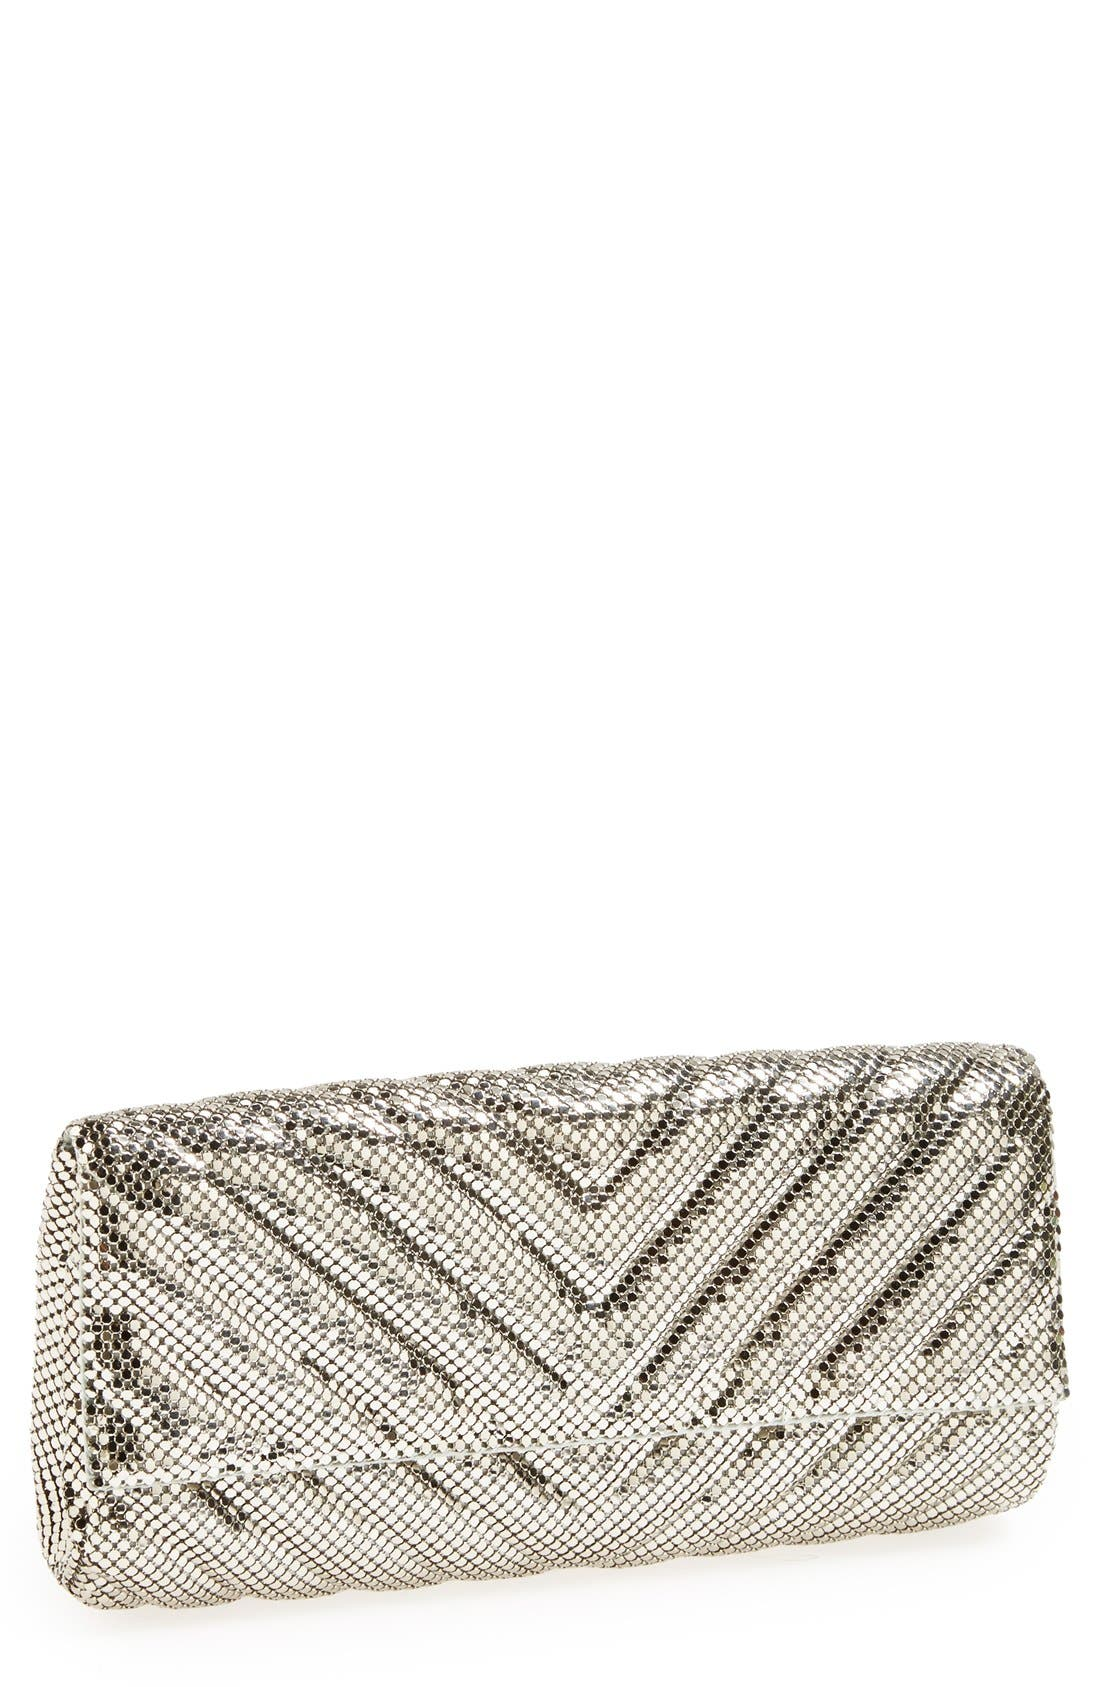 Alternate Image 1 Selected - Whiting & Davis Quilted Chevron Clutch